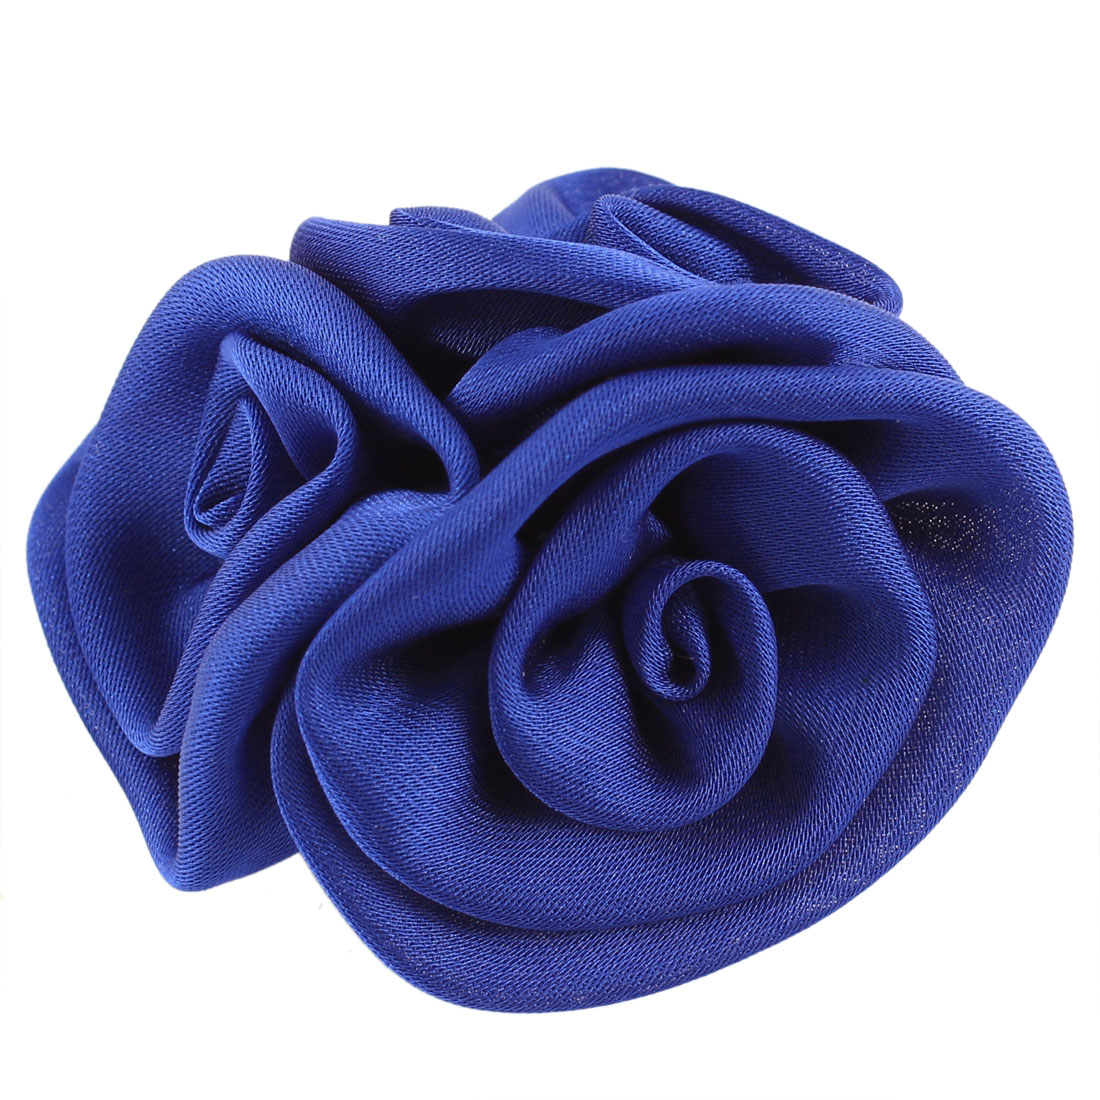 Lady Clothes Ornament Floral Design Flower Corsage Brooch Pin Blue